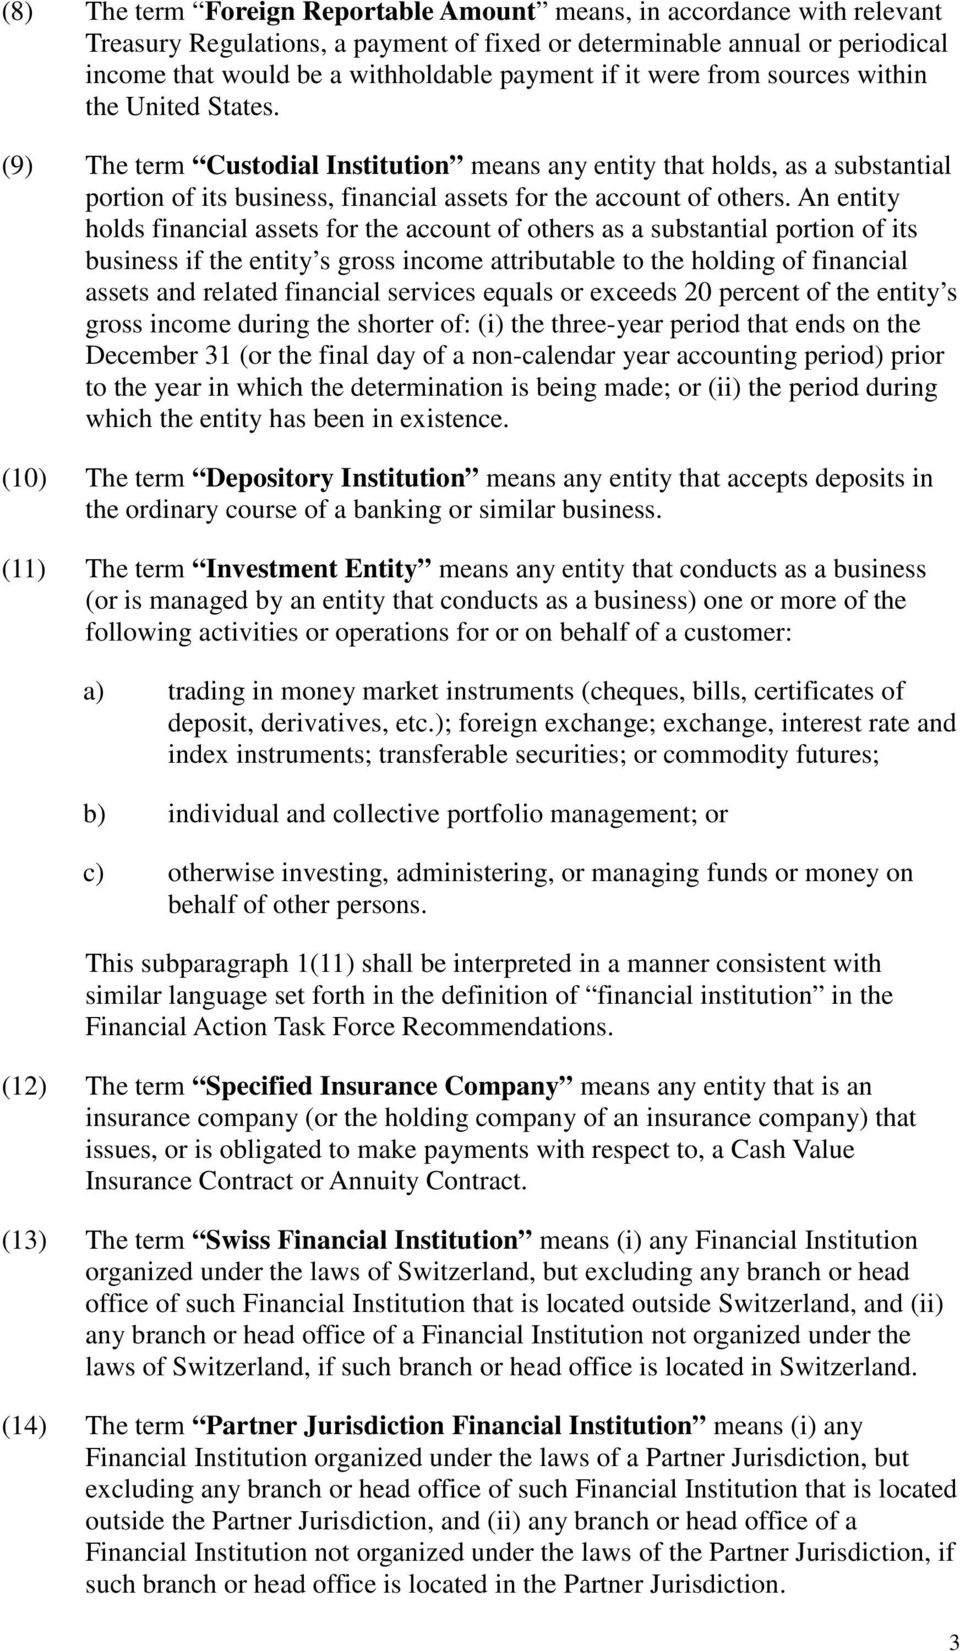 An entity holds financial assets for the account of others as a substantial portion of its business if the entity s gross income attributable to the holding of financial assets and related financial